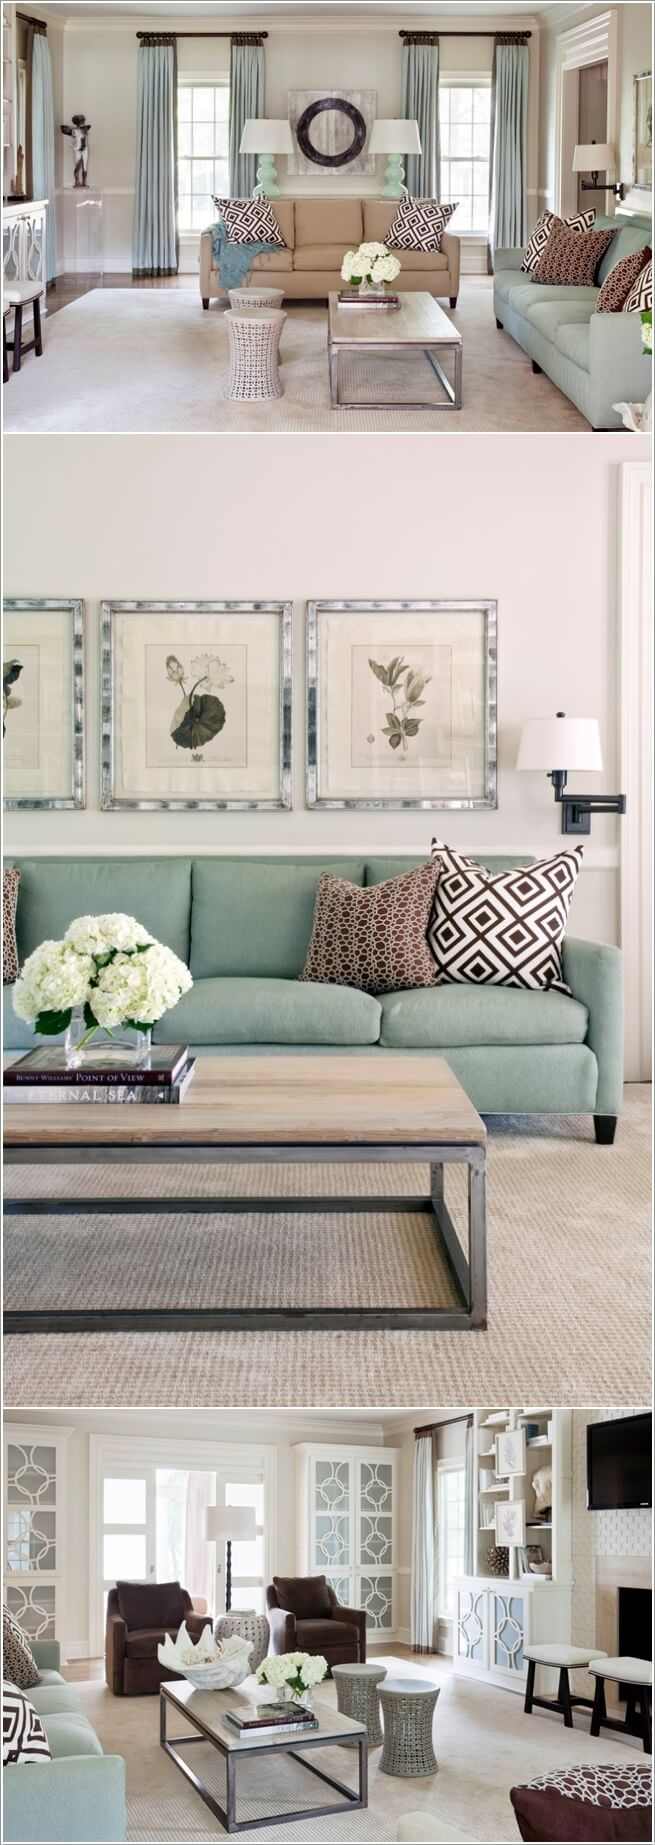 Decor Living Room Ideas: 10 Nature Inspired Living Room Decor Ideas